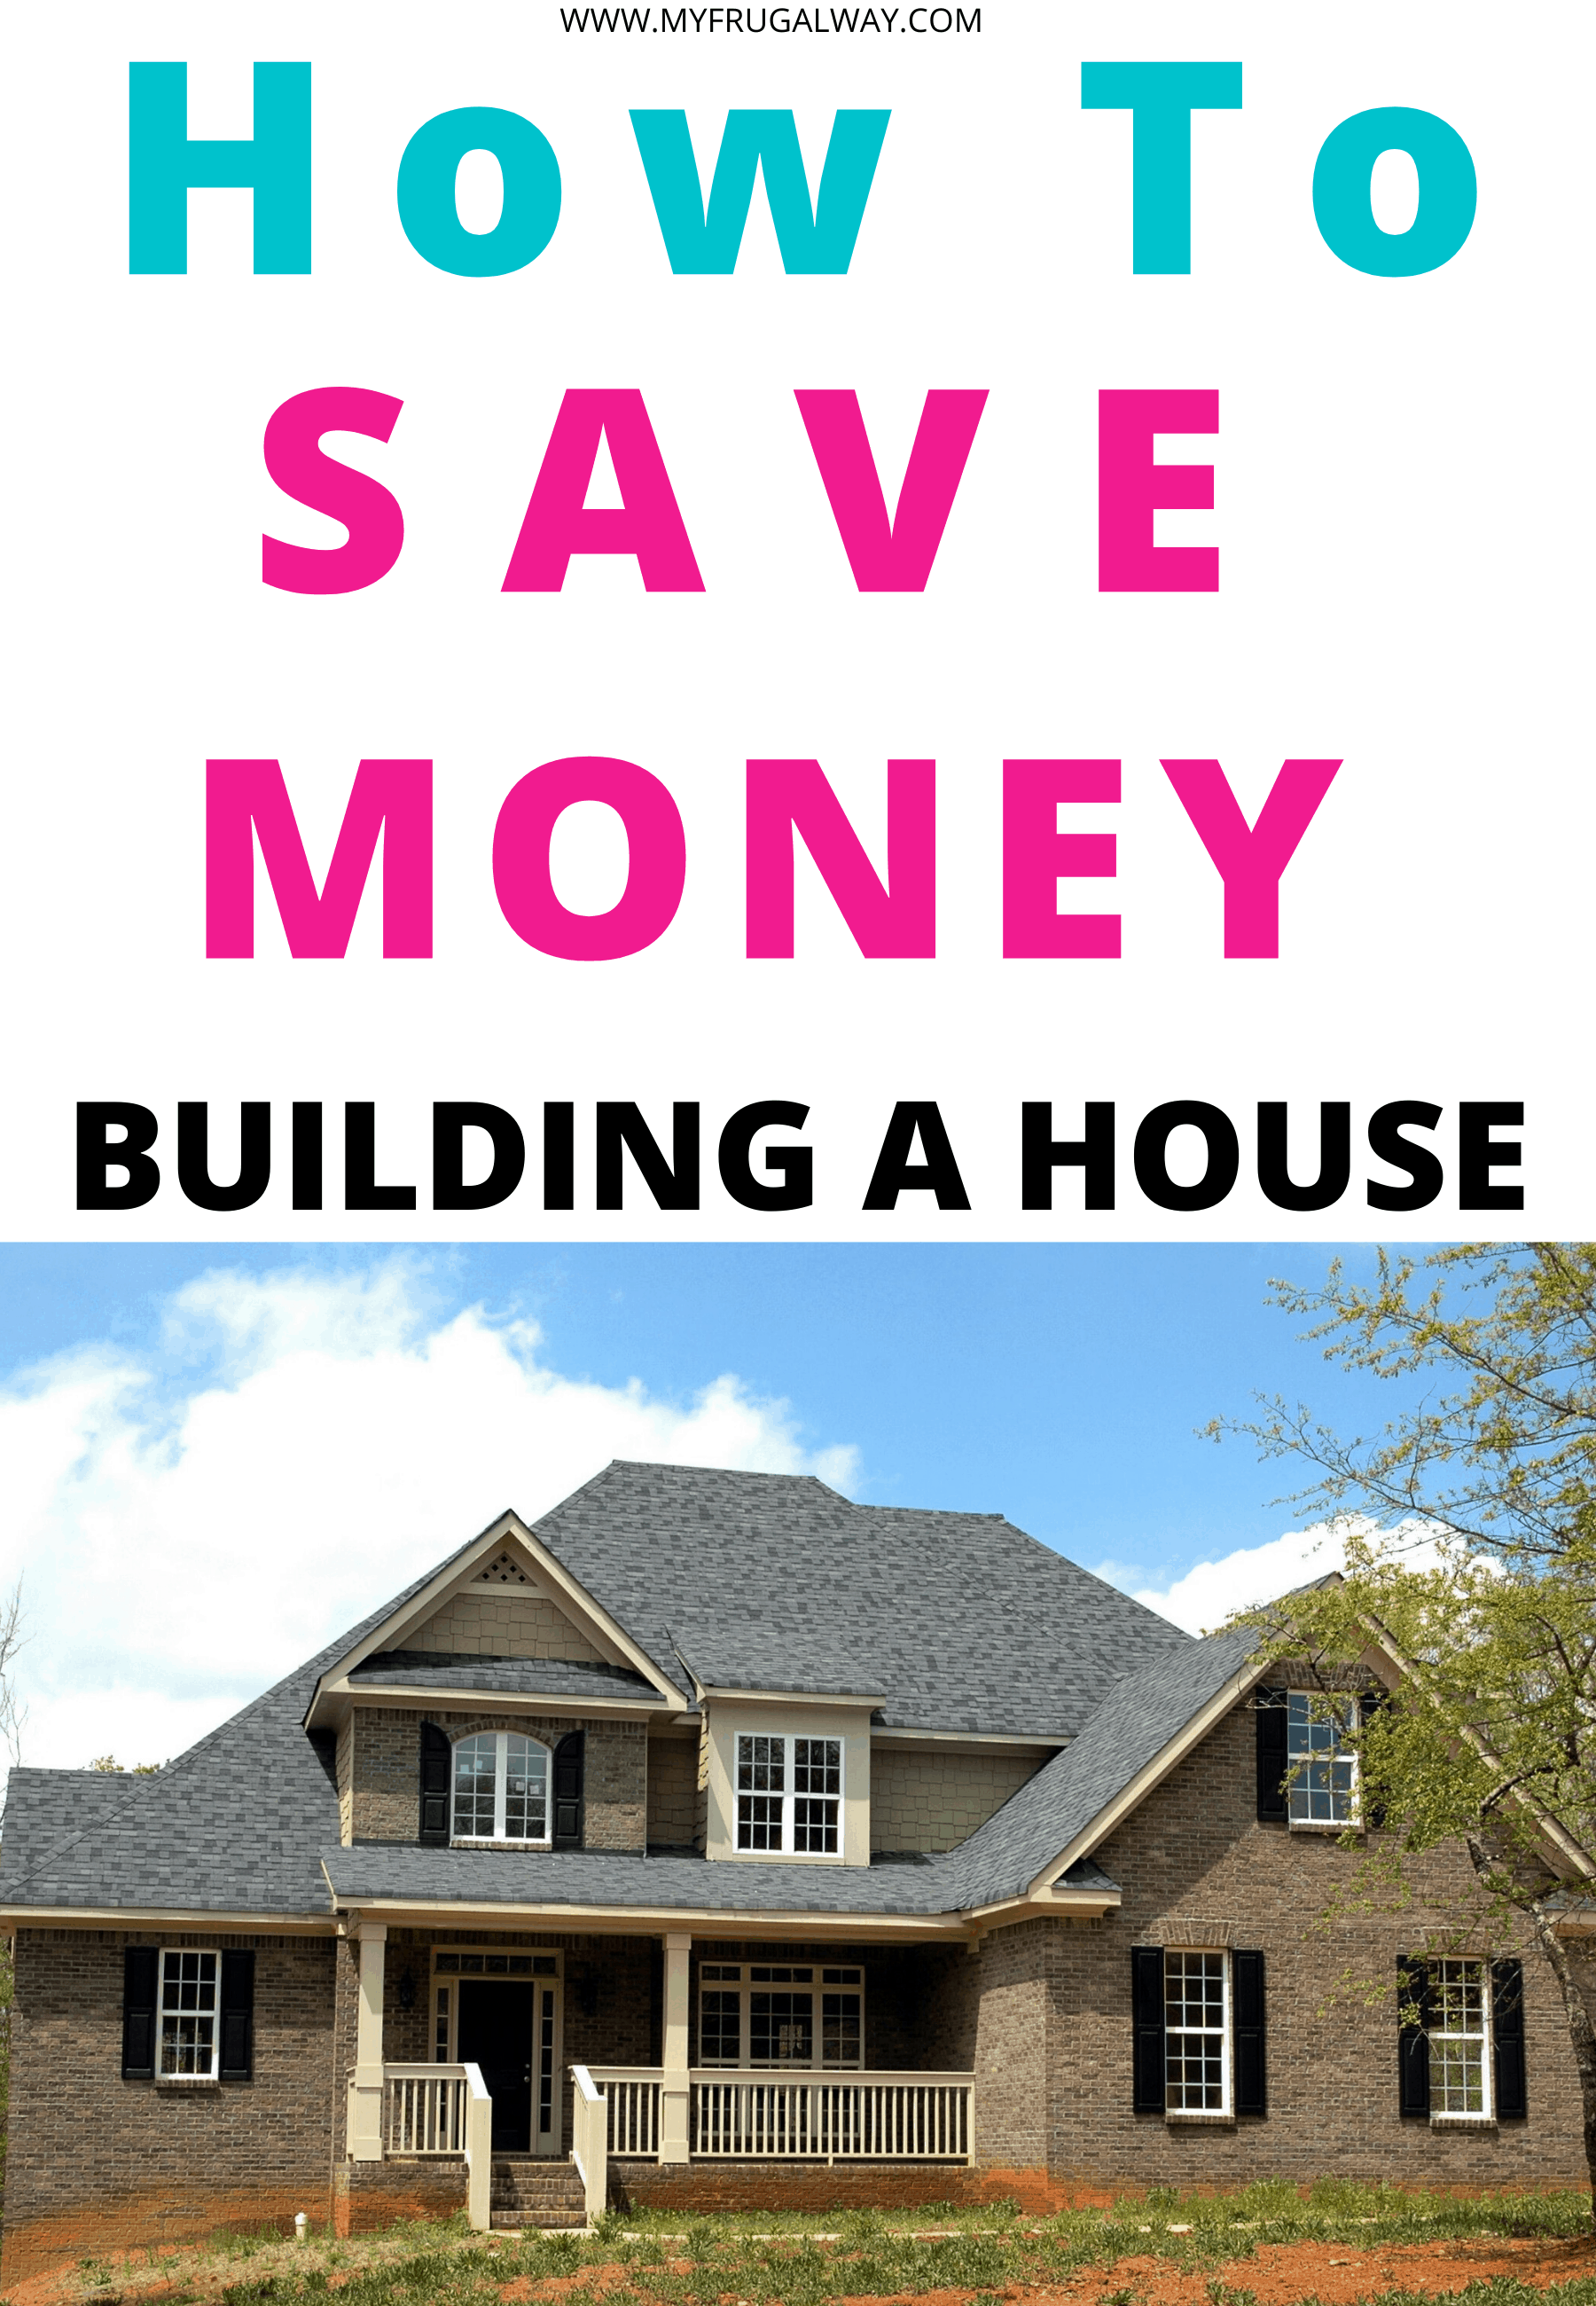 Budgeting tips when building a house. Looking for tips to save money for dream home? These smart money saving tips will help you ti design your dream home and not break the bank. #dreamhome #homebuilding #budget